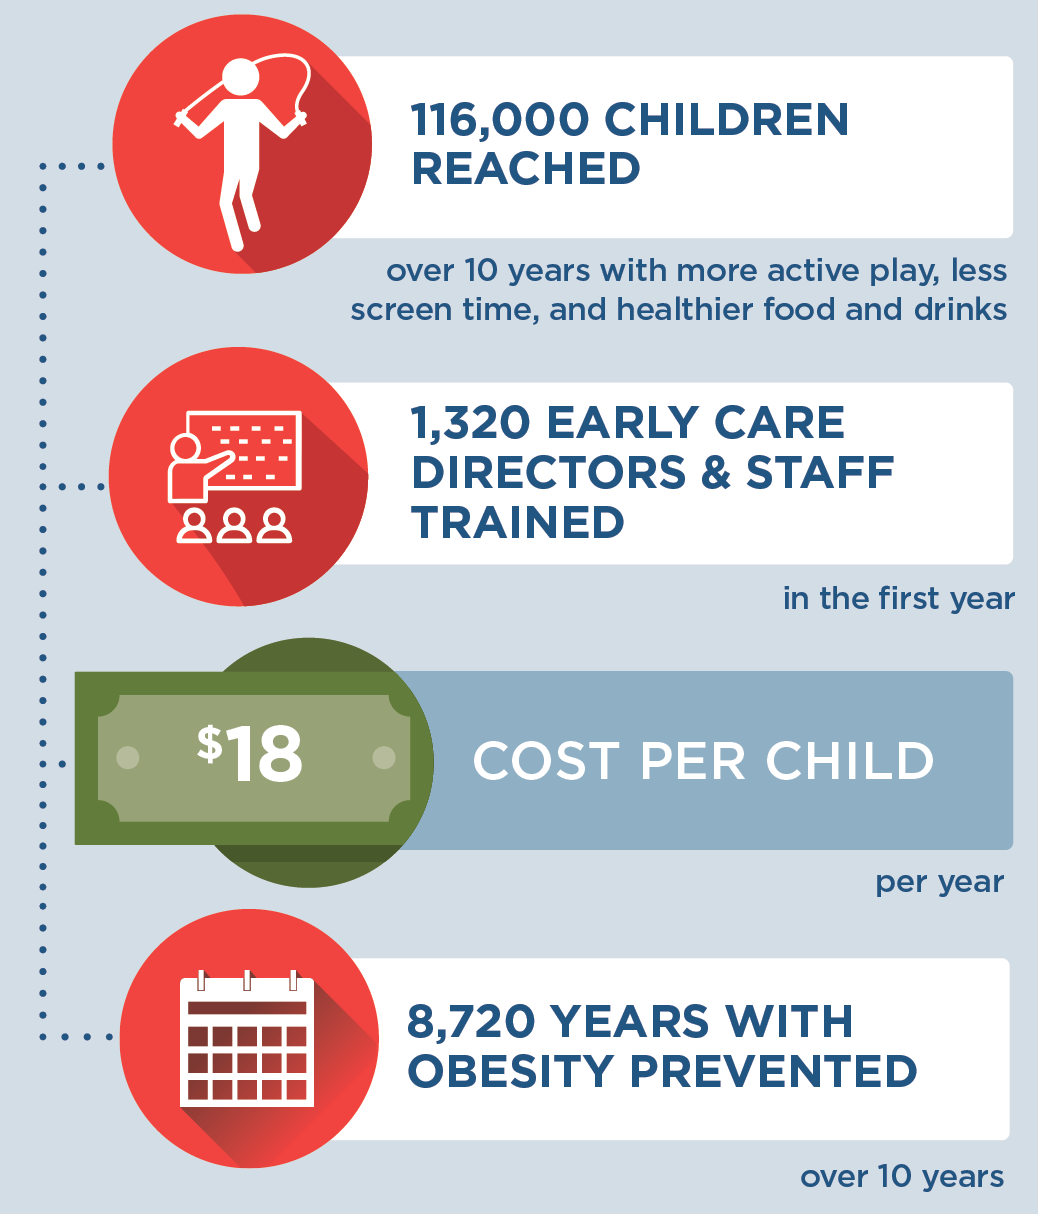 If NAP SACC was incorporated into Better Beginnings in Arkansas, then 116,000 children would be reached over 10 years with more active play, less screen time, and healthier food and drinks. 1,320 early care directors and staff would be trained in the first year. It would cost $18 per child per year to implement. 8,720 years with obesity would be prevented over 10 years.